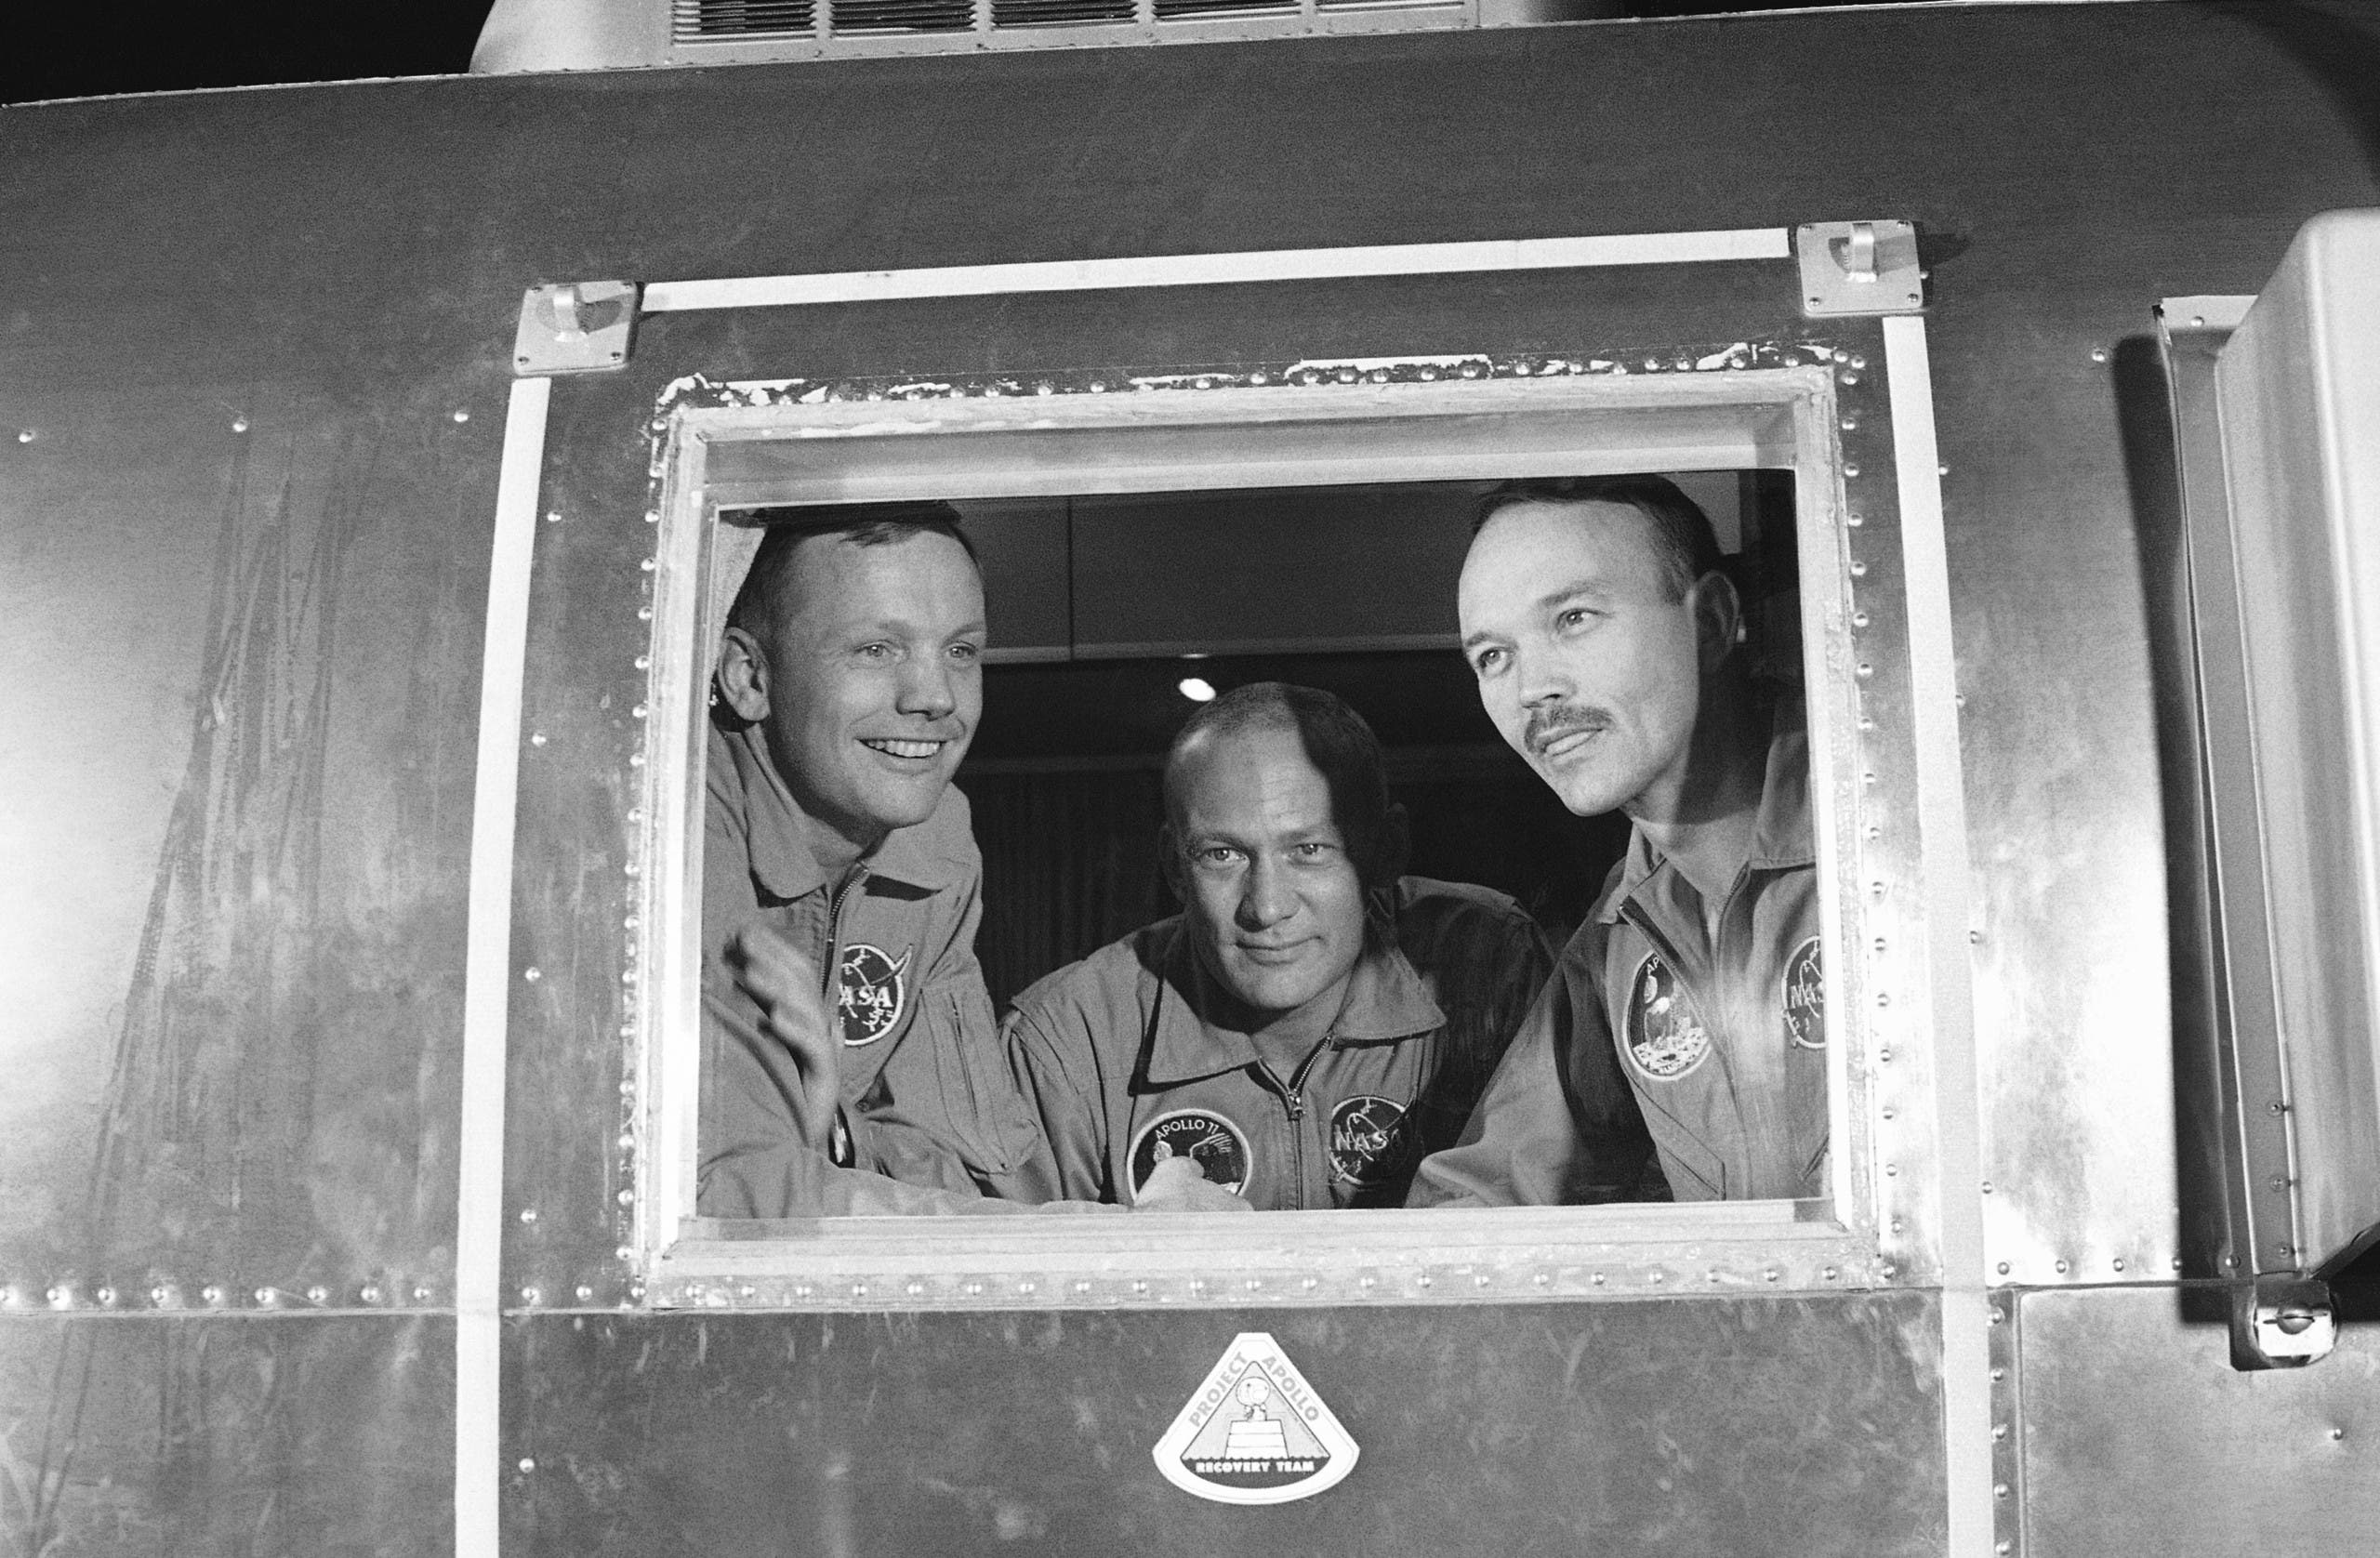 In this July 27 1969 file photo, Apollo 11 crew members Neil Armstrong, Buzz Aldrin and Michael Collins sit inside a quarantine van in Houston. (AP)